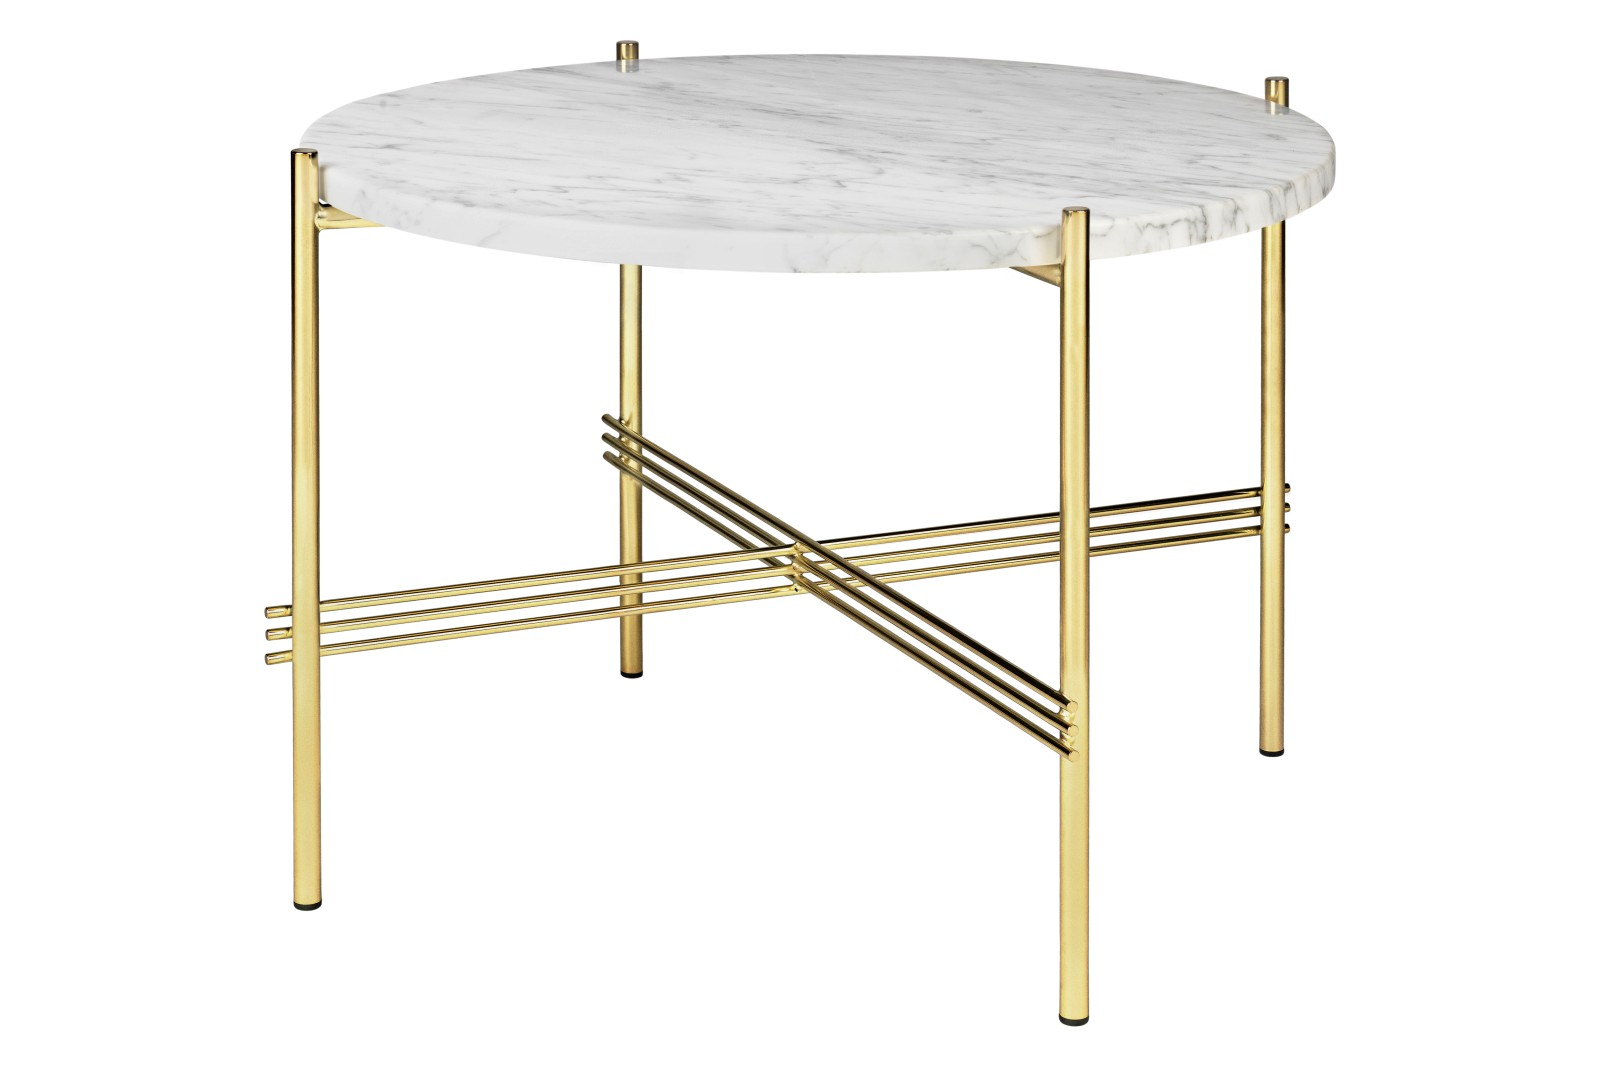 TS Round Coffee Table with Marble Top Gubi Marble Bianco Carrara, Gubi Metal Brass, 0 55 x 41 cm